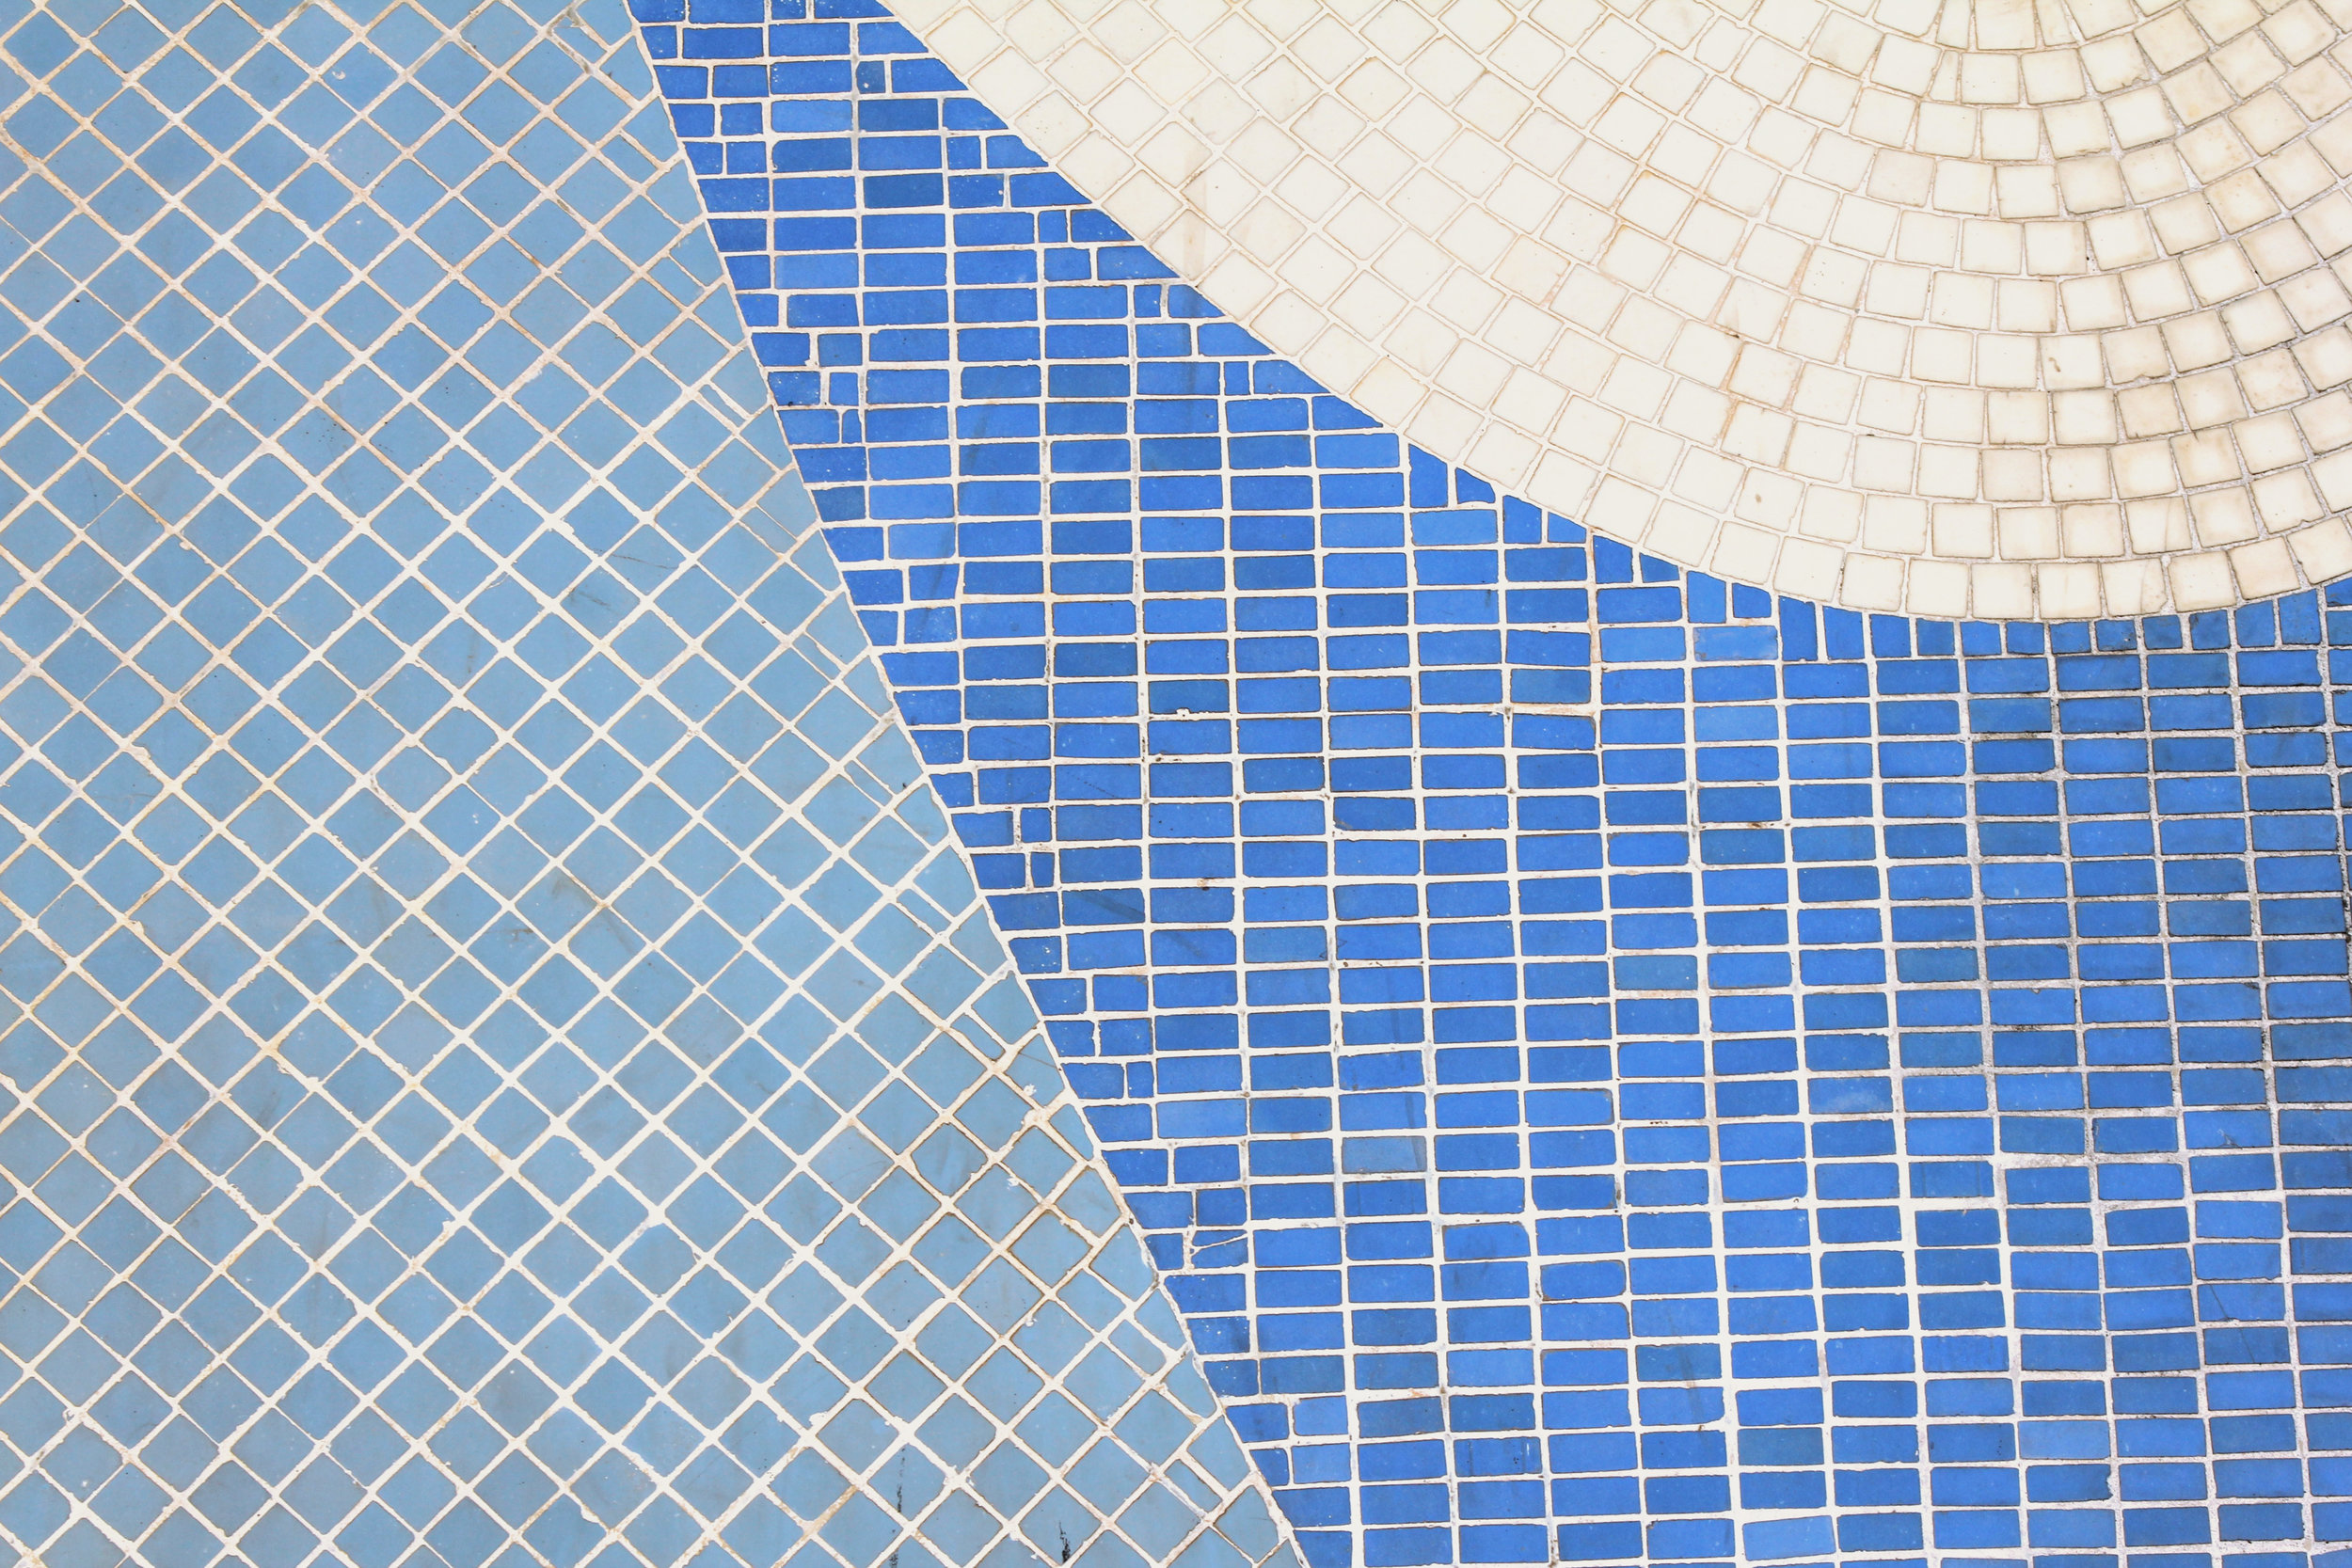 Tile Cleaning - It is often difficult to remove calcium buildup with a pumice stone by hand, or with harsh chemicals that can cause irreparable damage. Replacing the tile can become very expensive. For a fraction of the cost of replacement, we can safely remove the calcium buildup for you.First we drain the water, then we clean the tile using a bead blasting process on the tile at a low air pressure. The calcium buildup is destroyed, leaving the tile surface beautiful again...without any damage! The whole procedure you will find to be quick and very inexpensive when weighing out the alternatives. Spend hours and days removing the buildup by hand with pumice stone or chemicals which can cause damage, replace the tile which can be costly, or CALL ROADRUNNER POOLS!